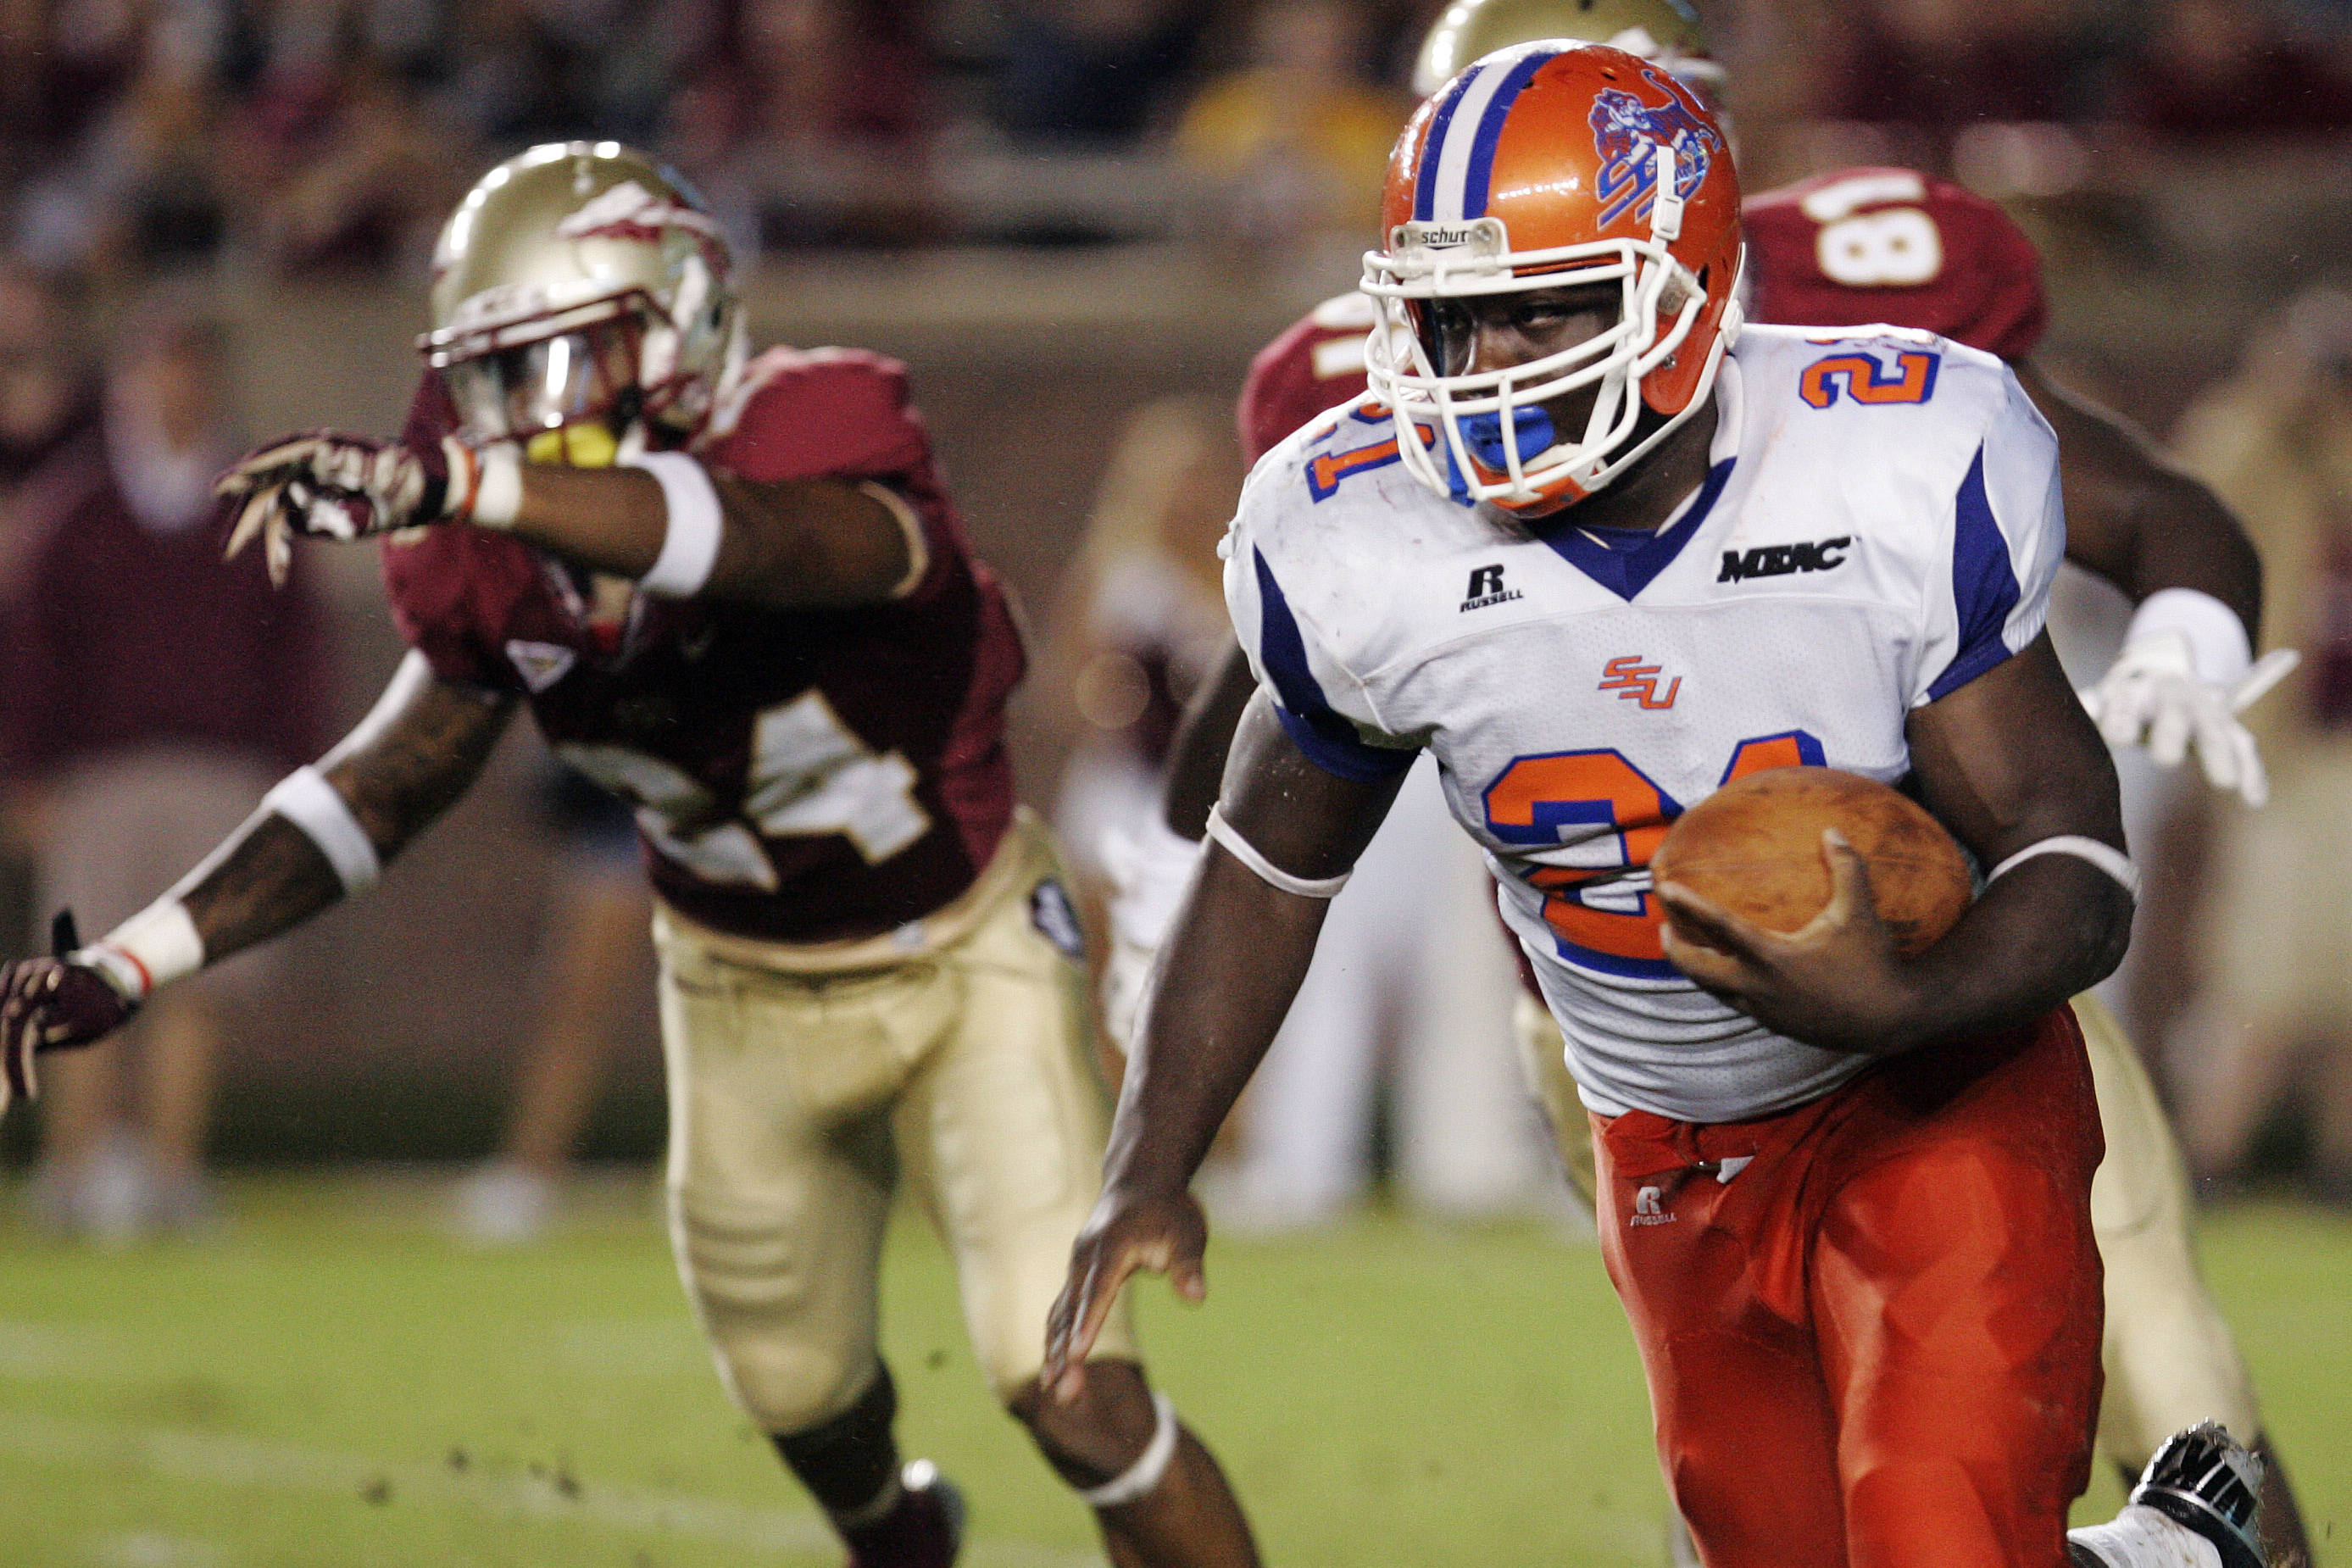 Savannah State's Sheldon Barnes runs against Florida State at the end of the second quarter. (AP Photo/Steve Cannon)